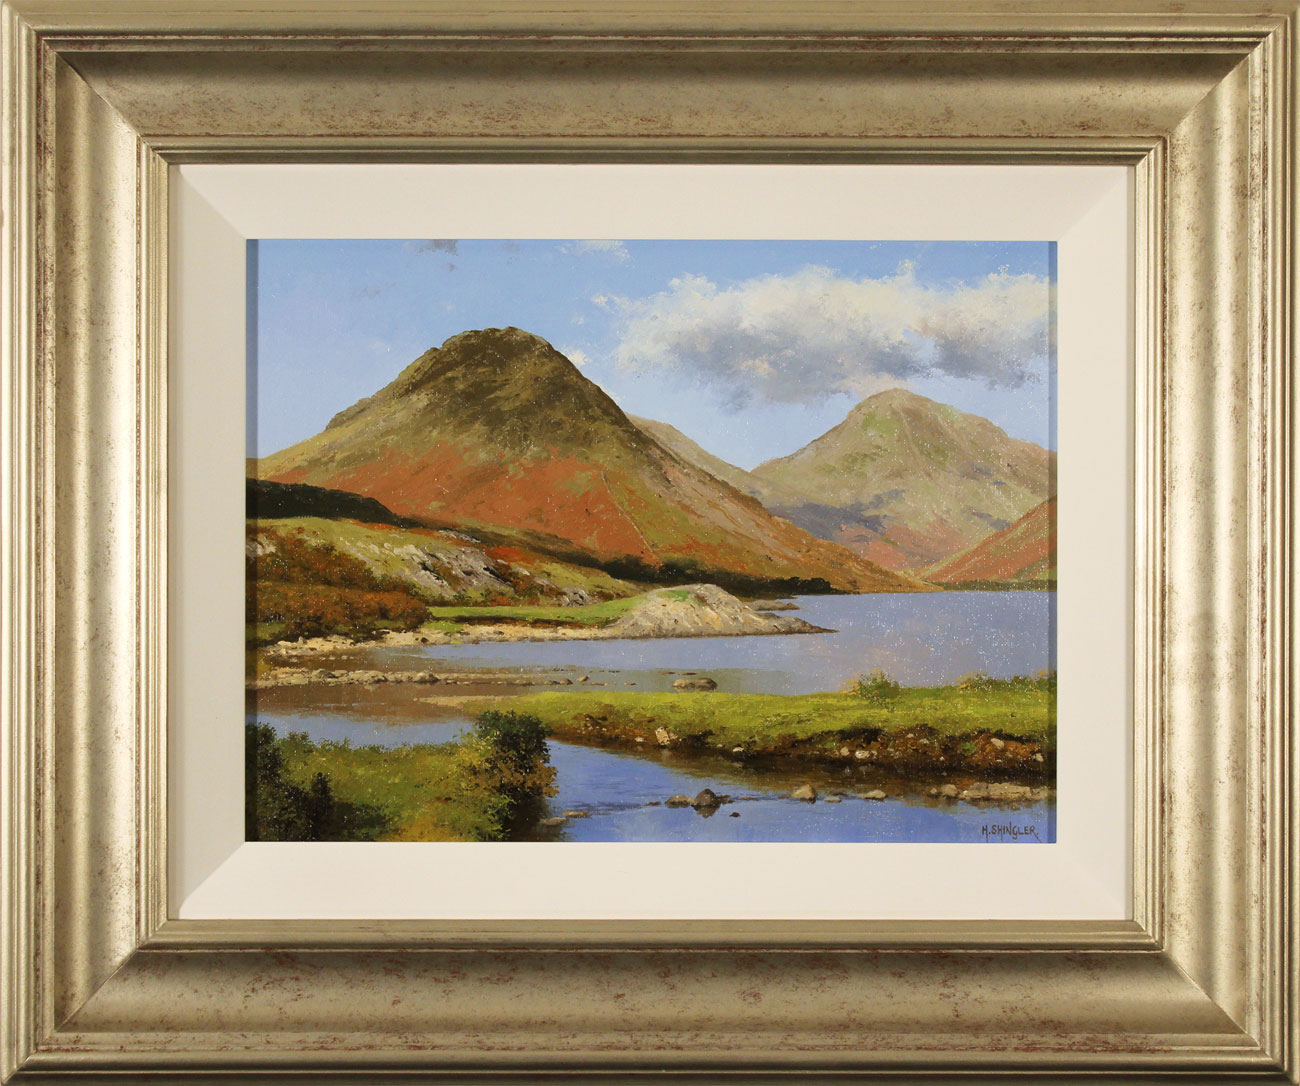 Howard Shingler, Original oil painting on panel, Yewbarrow from Wastwater, click to enlarge